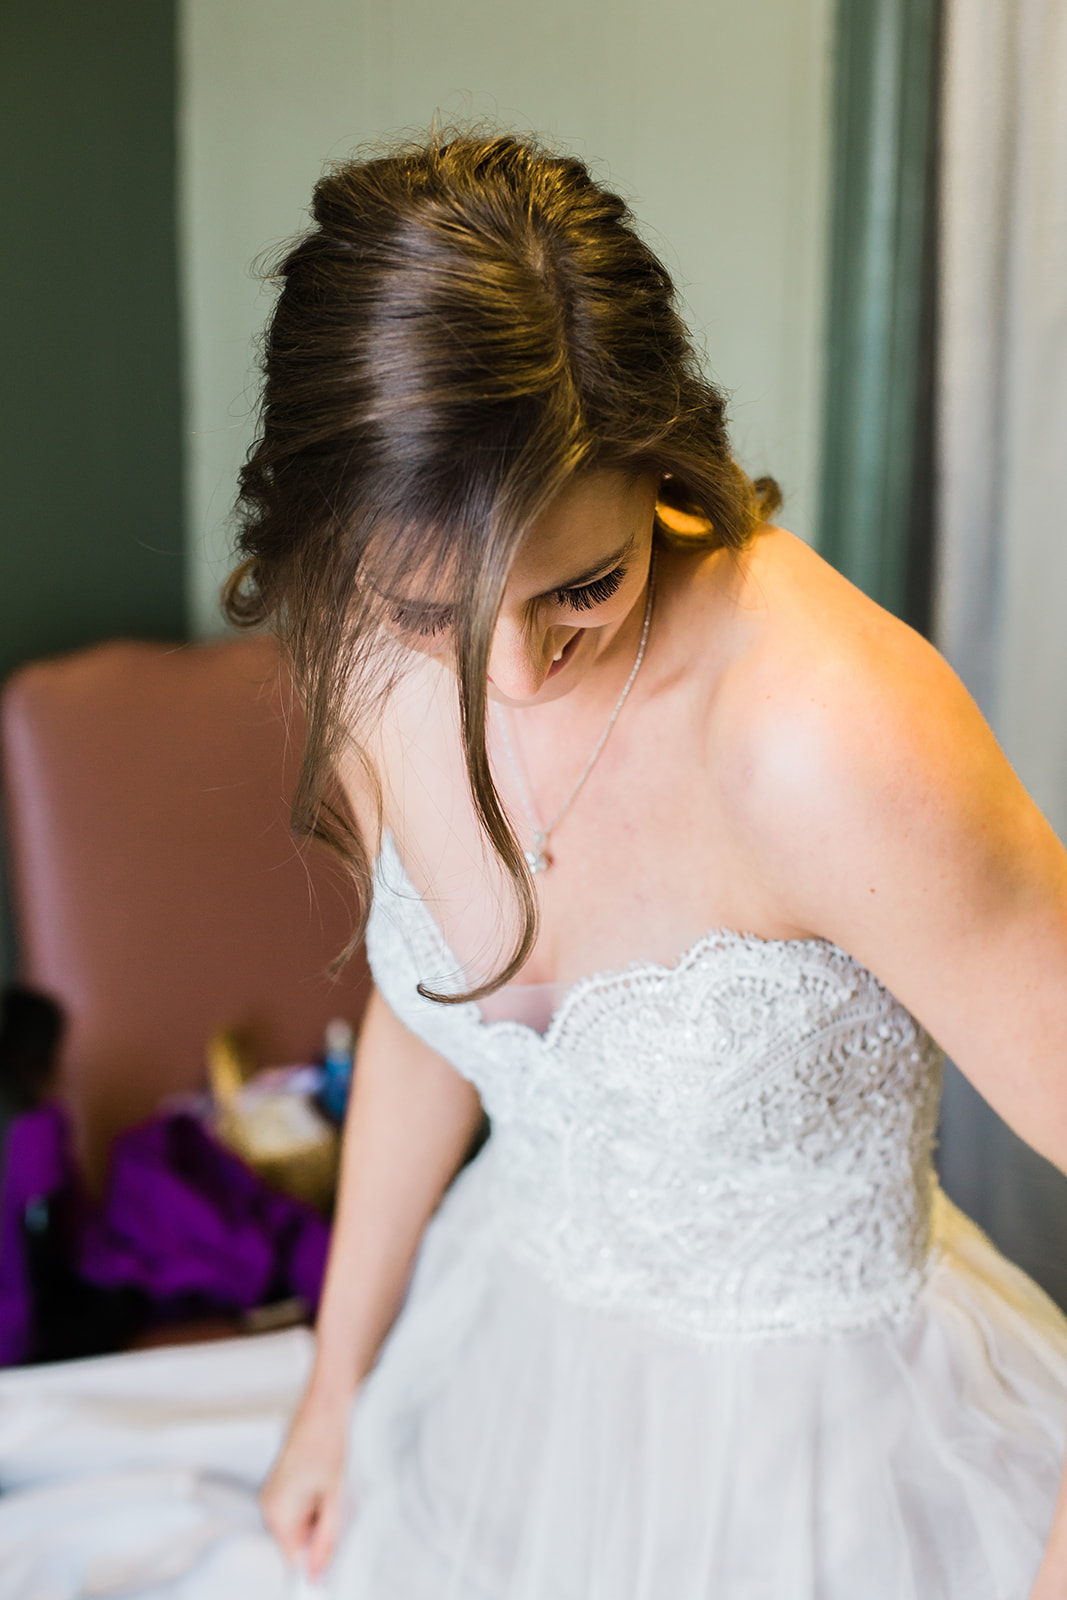 spokane wedding dress bride